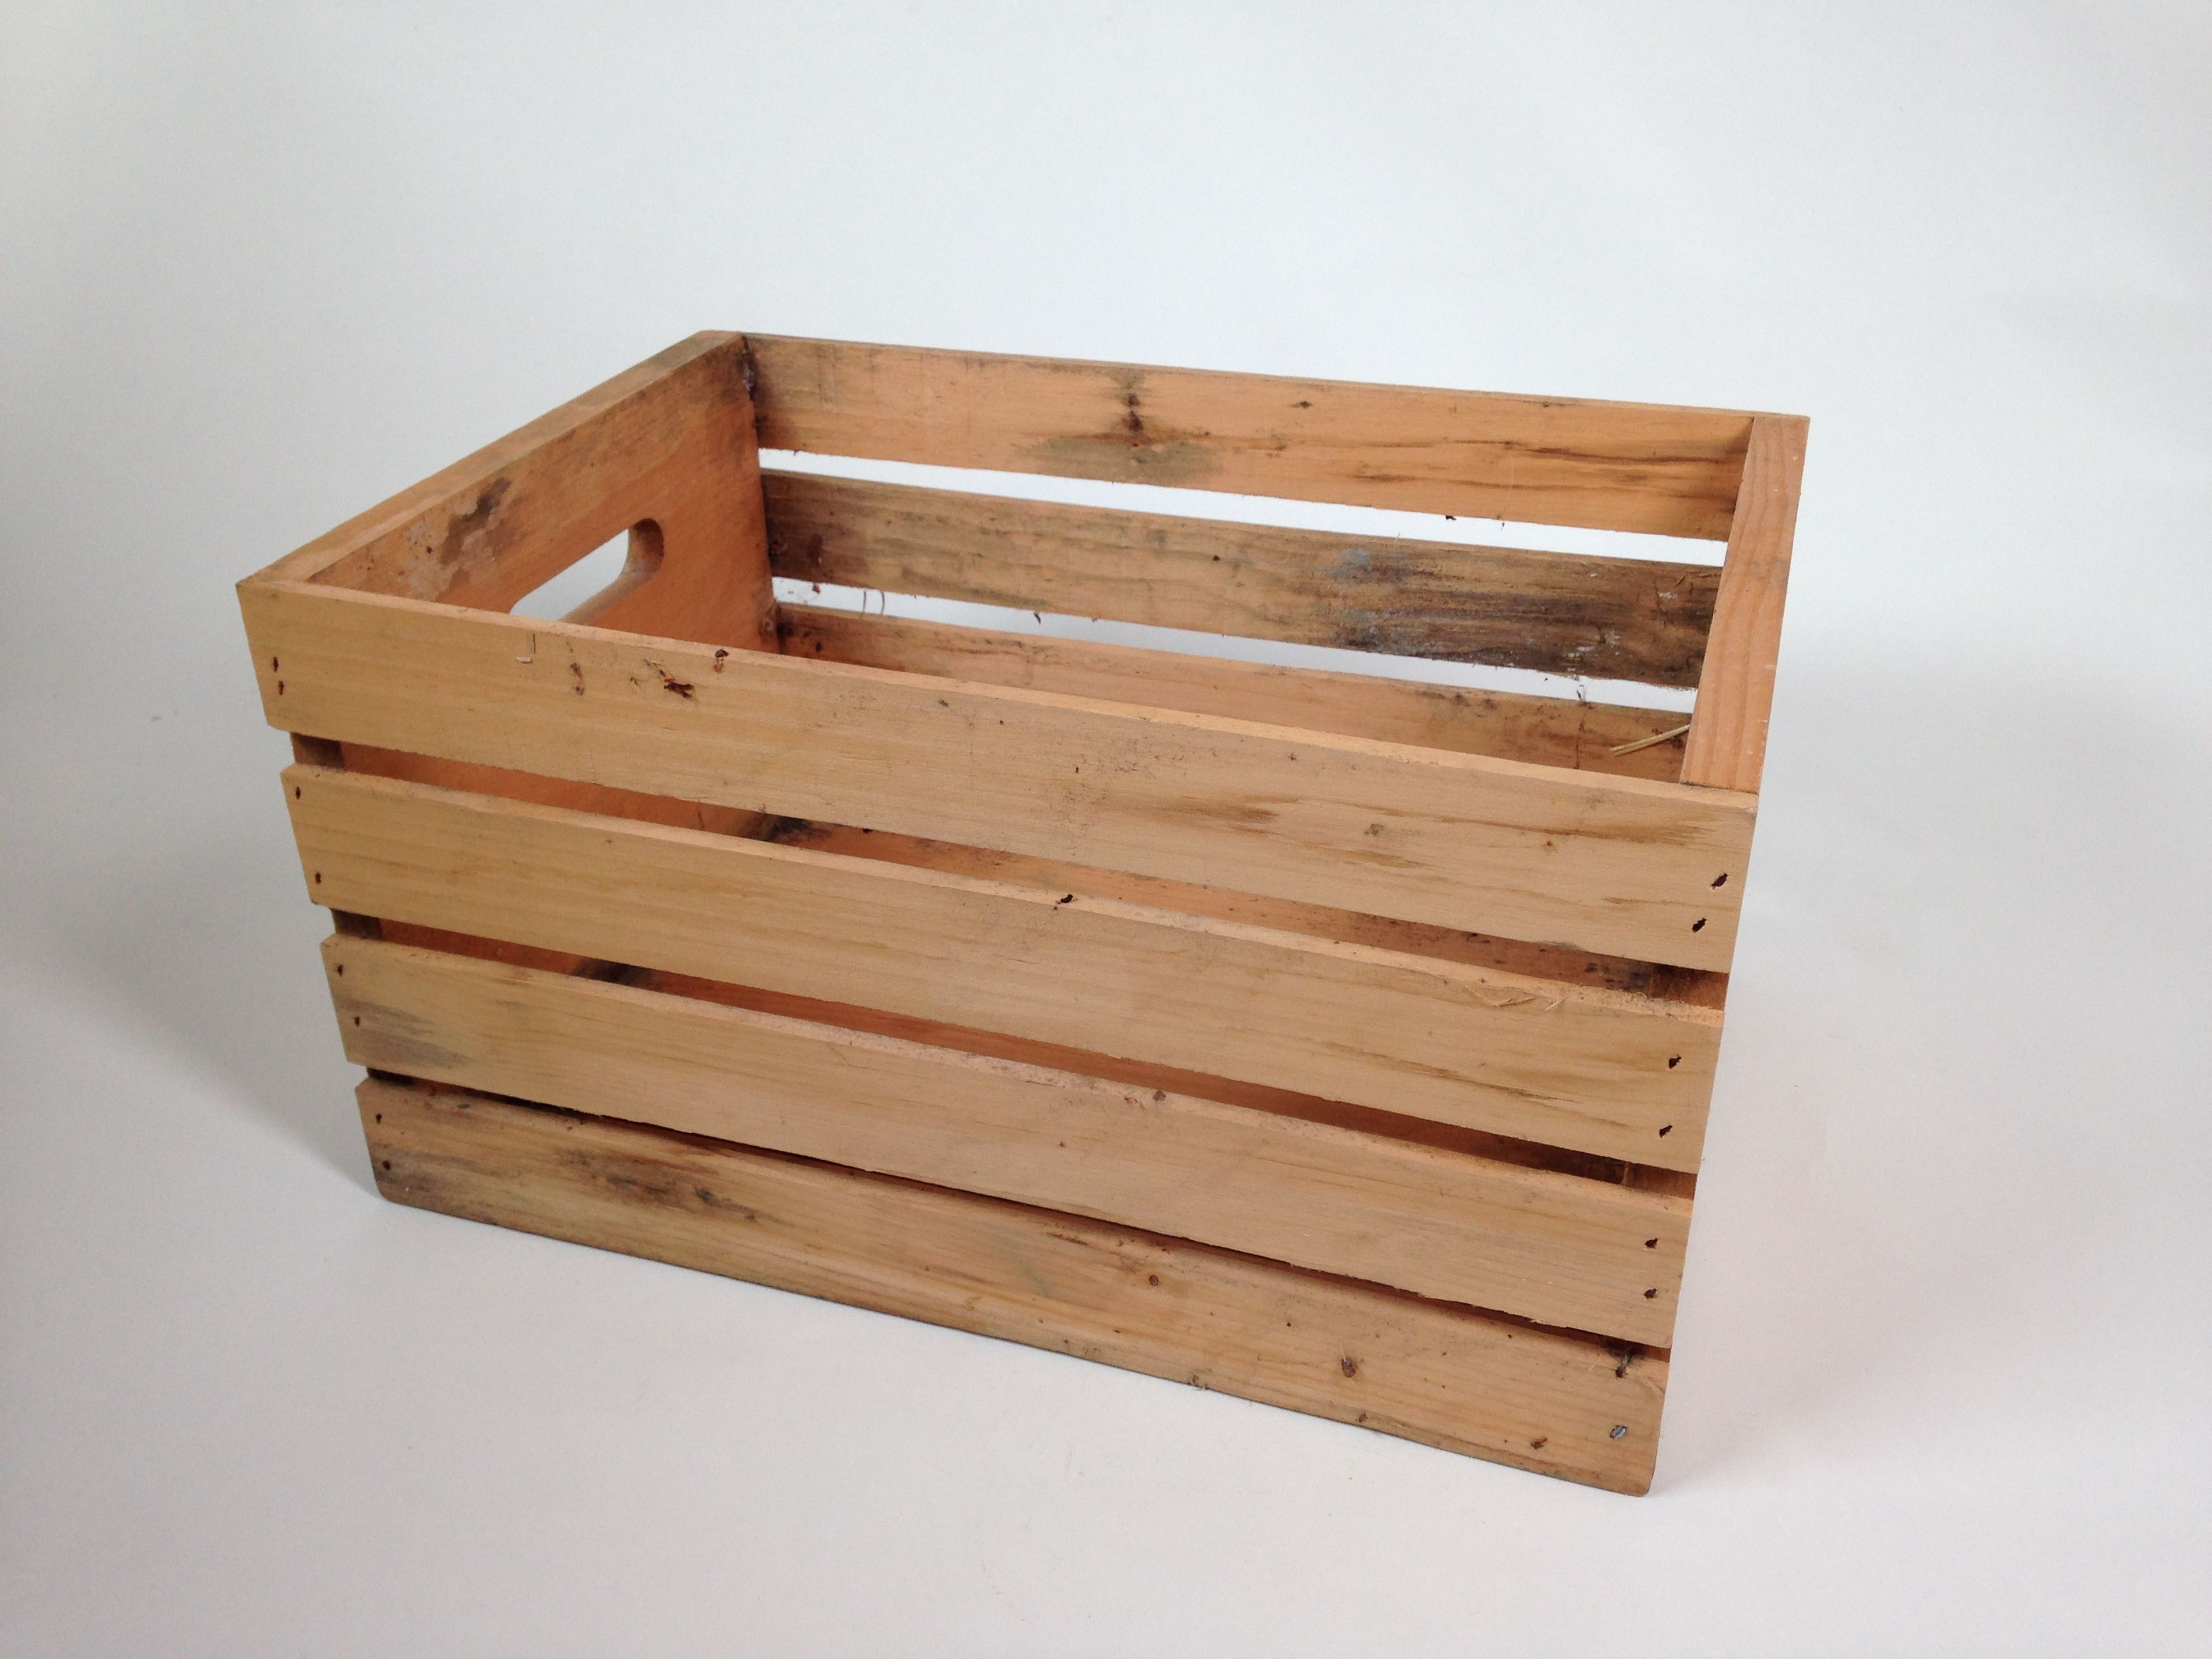 Wooden Crate 18 Wide X 12 Deep X 10 Tall Quantity 1 Color